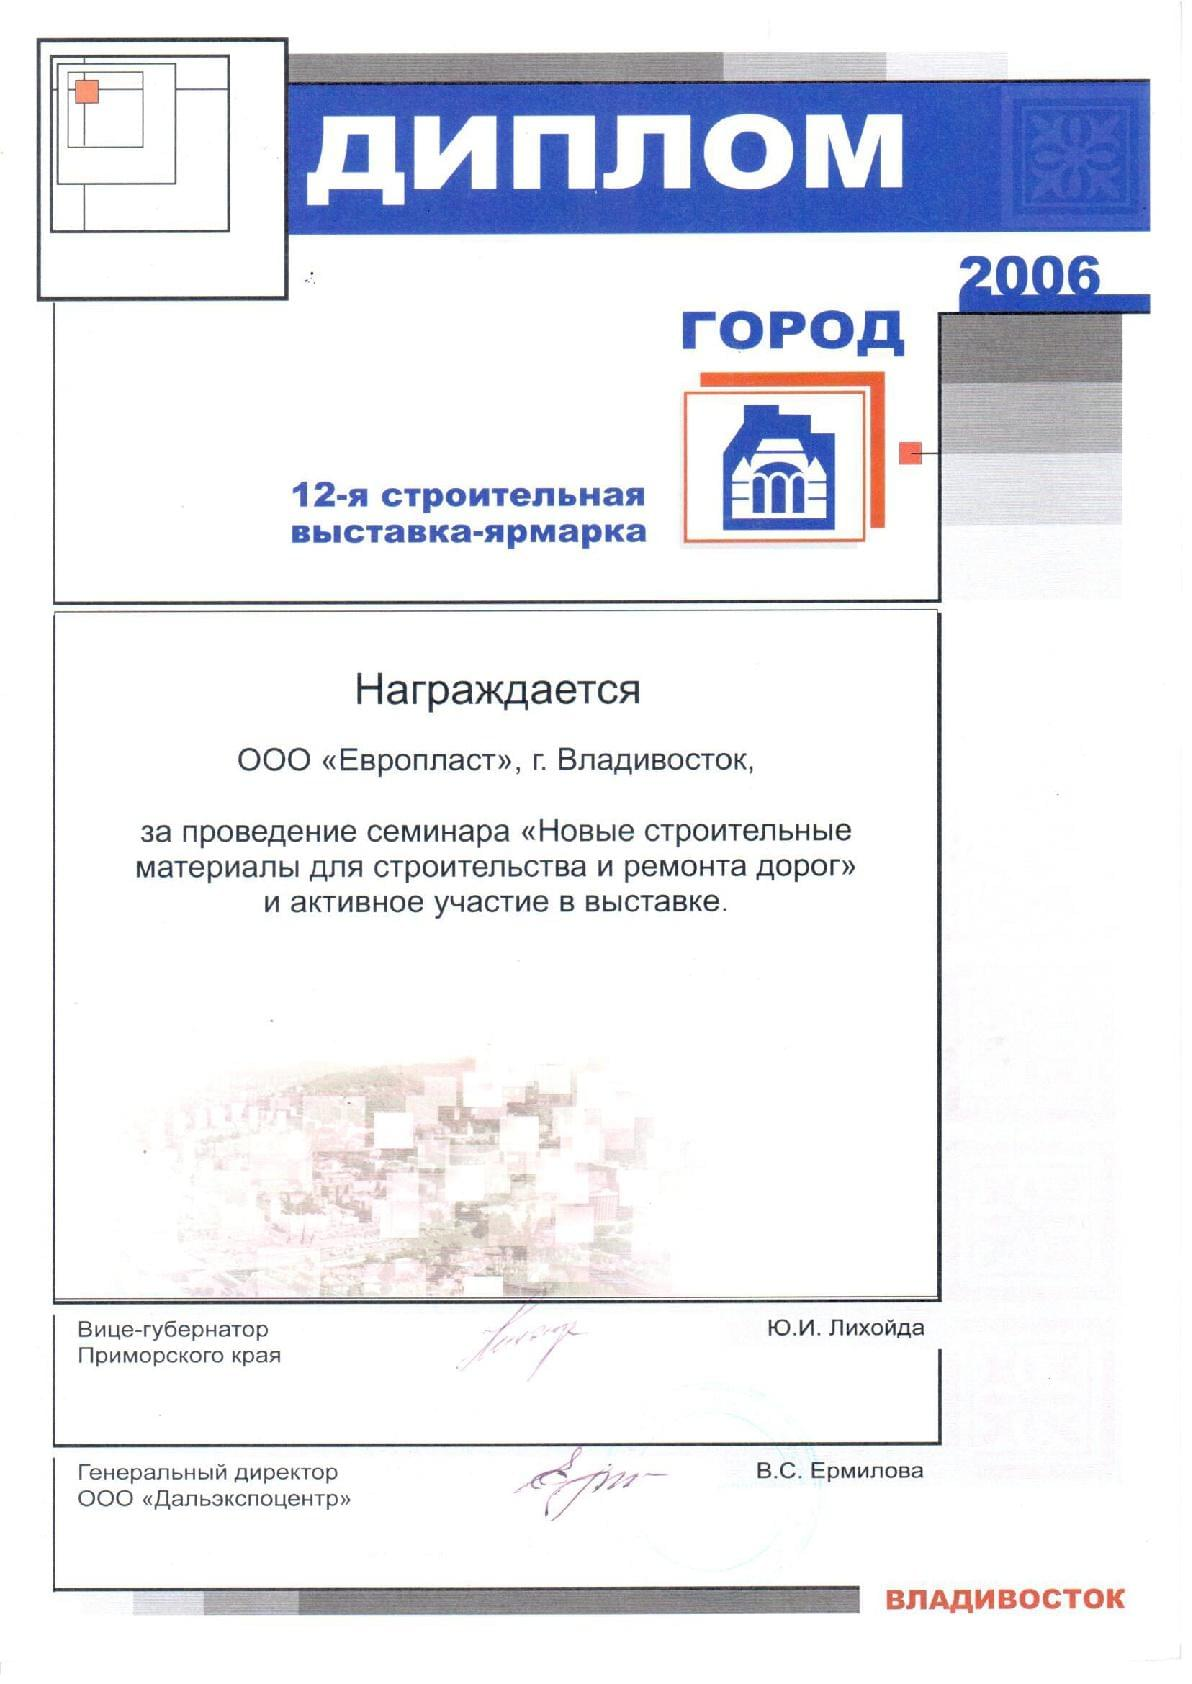 /images/cms/data/diplom_2006-001.jpg